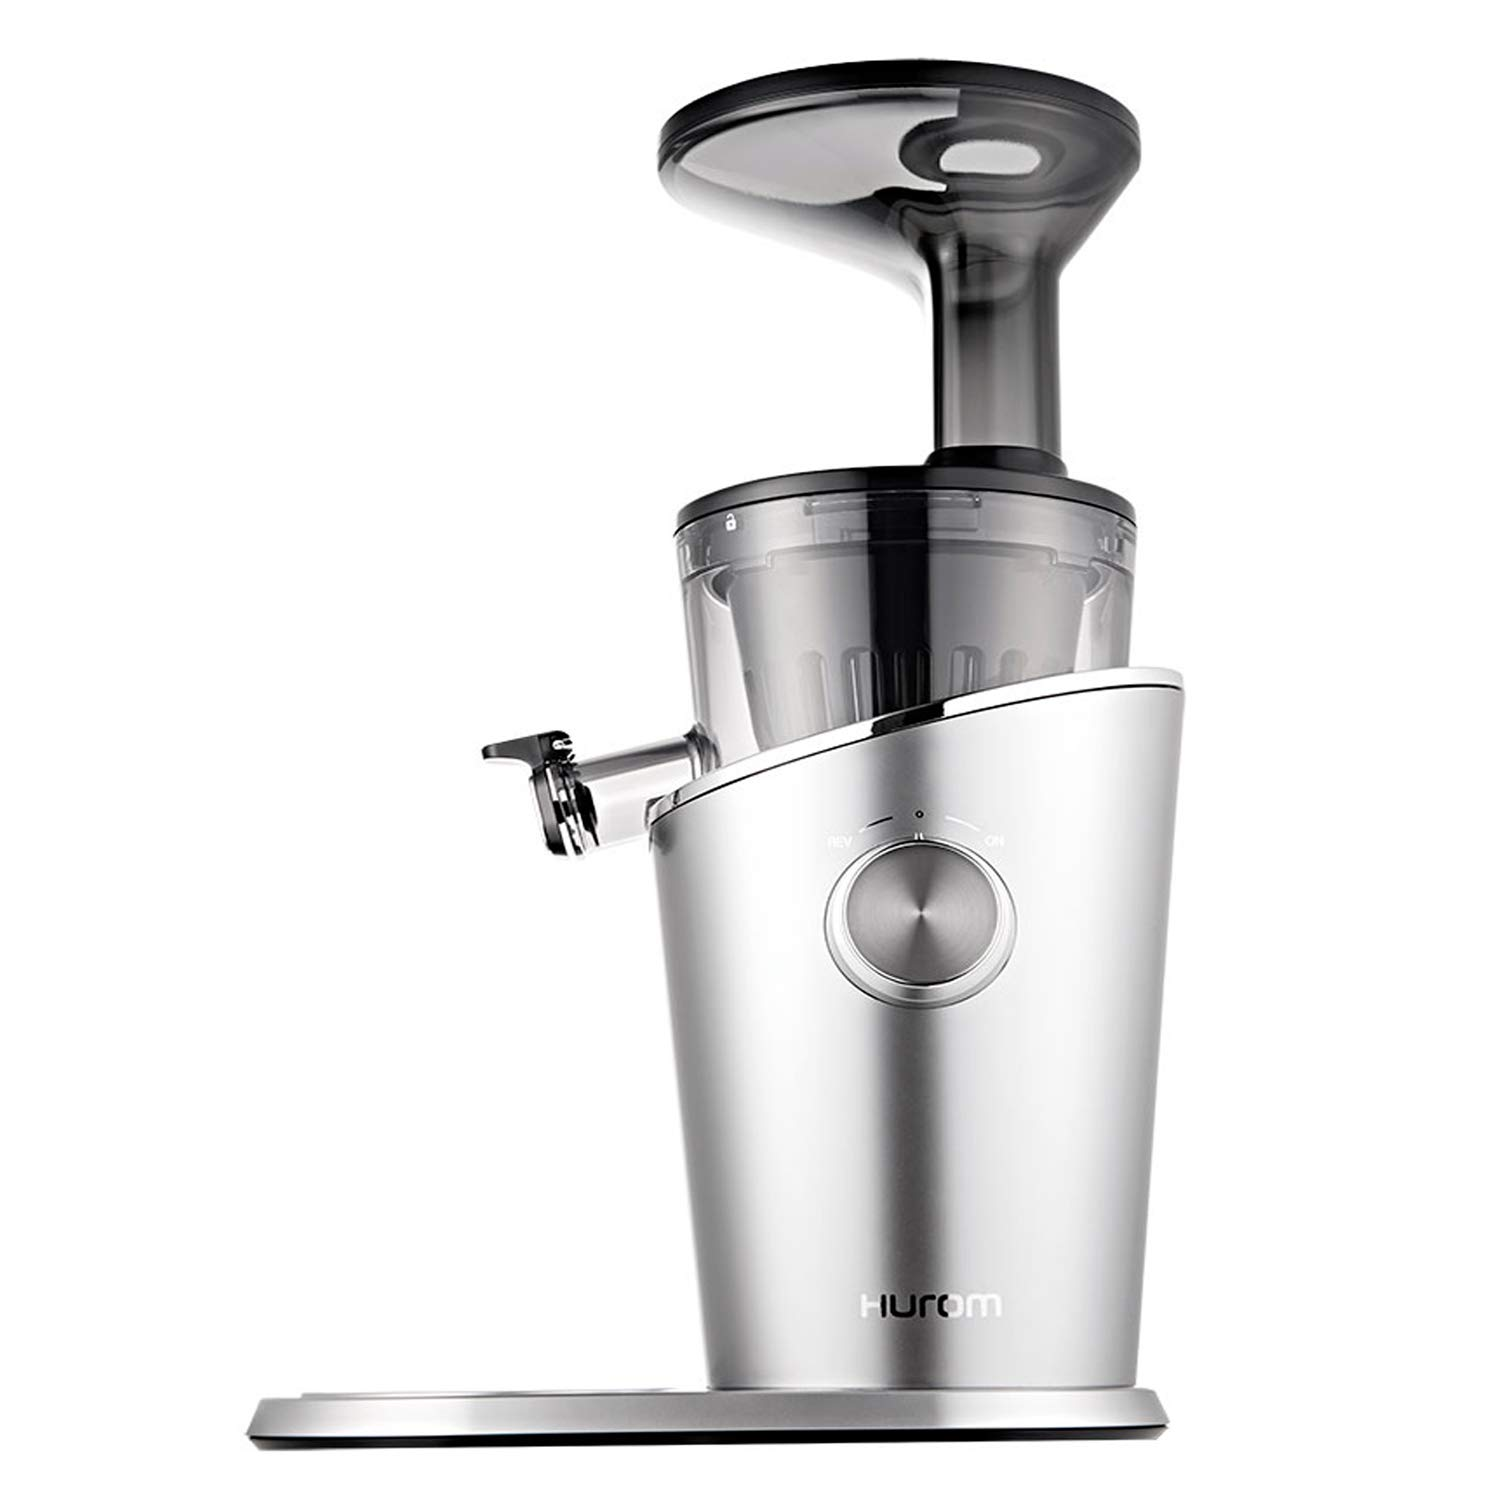 Hurom H-100 Cold Press Slow Juicer Series, 43 RPM, 150 Watts Energy Efficient Motor, all-new 100% Rust-Free Strainers For Fast And Thorough Cleaning, Patented Pulp Adjustor (Titanium Grey)